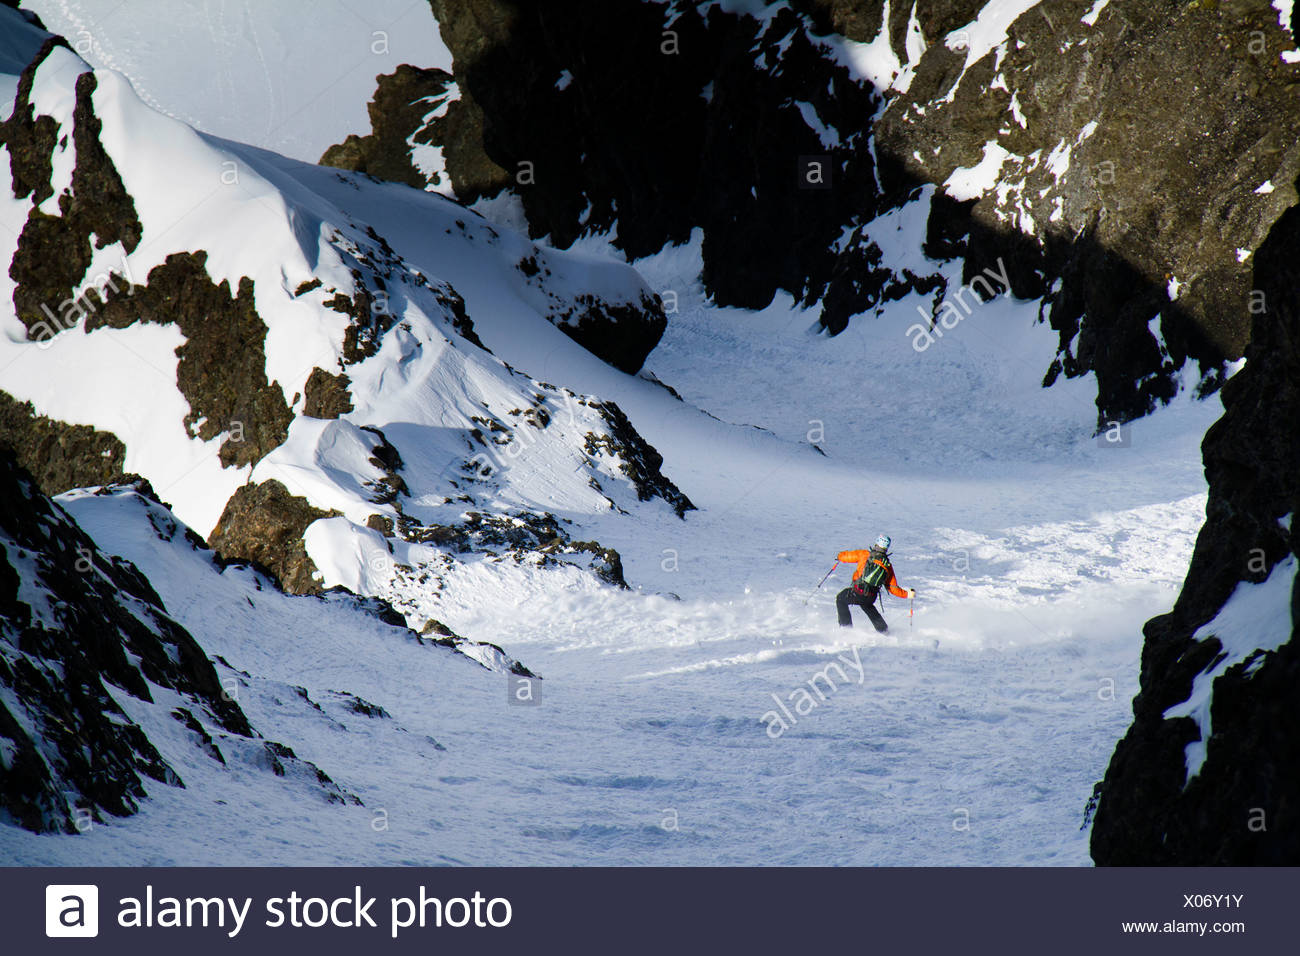 Man backcountry ski mountaineering on the north face of Korohusk Peak in the Ram Valley, Chugach Mountains, Eagle River, Alaska - Stock Image